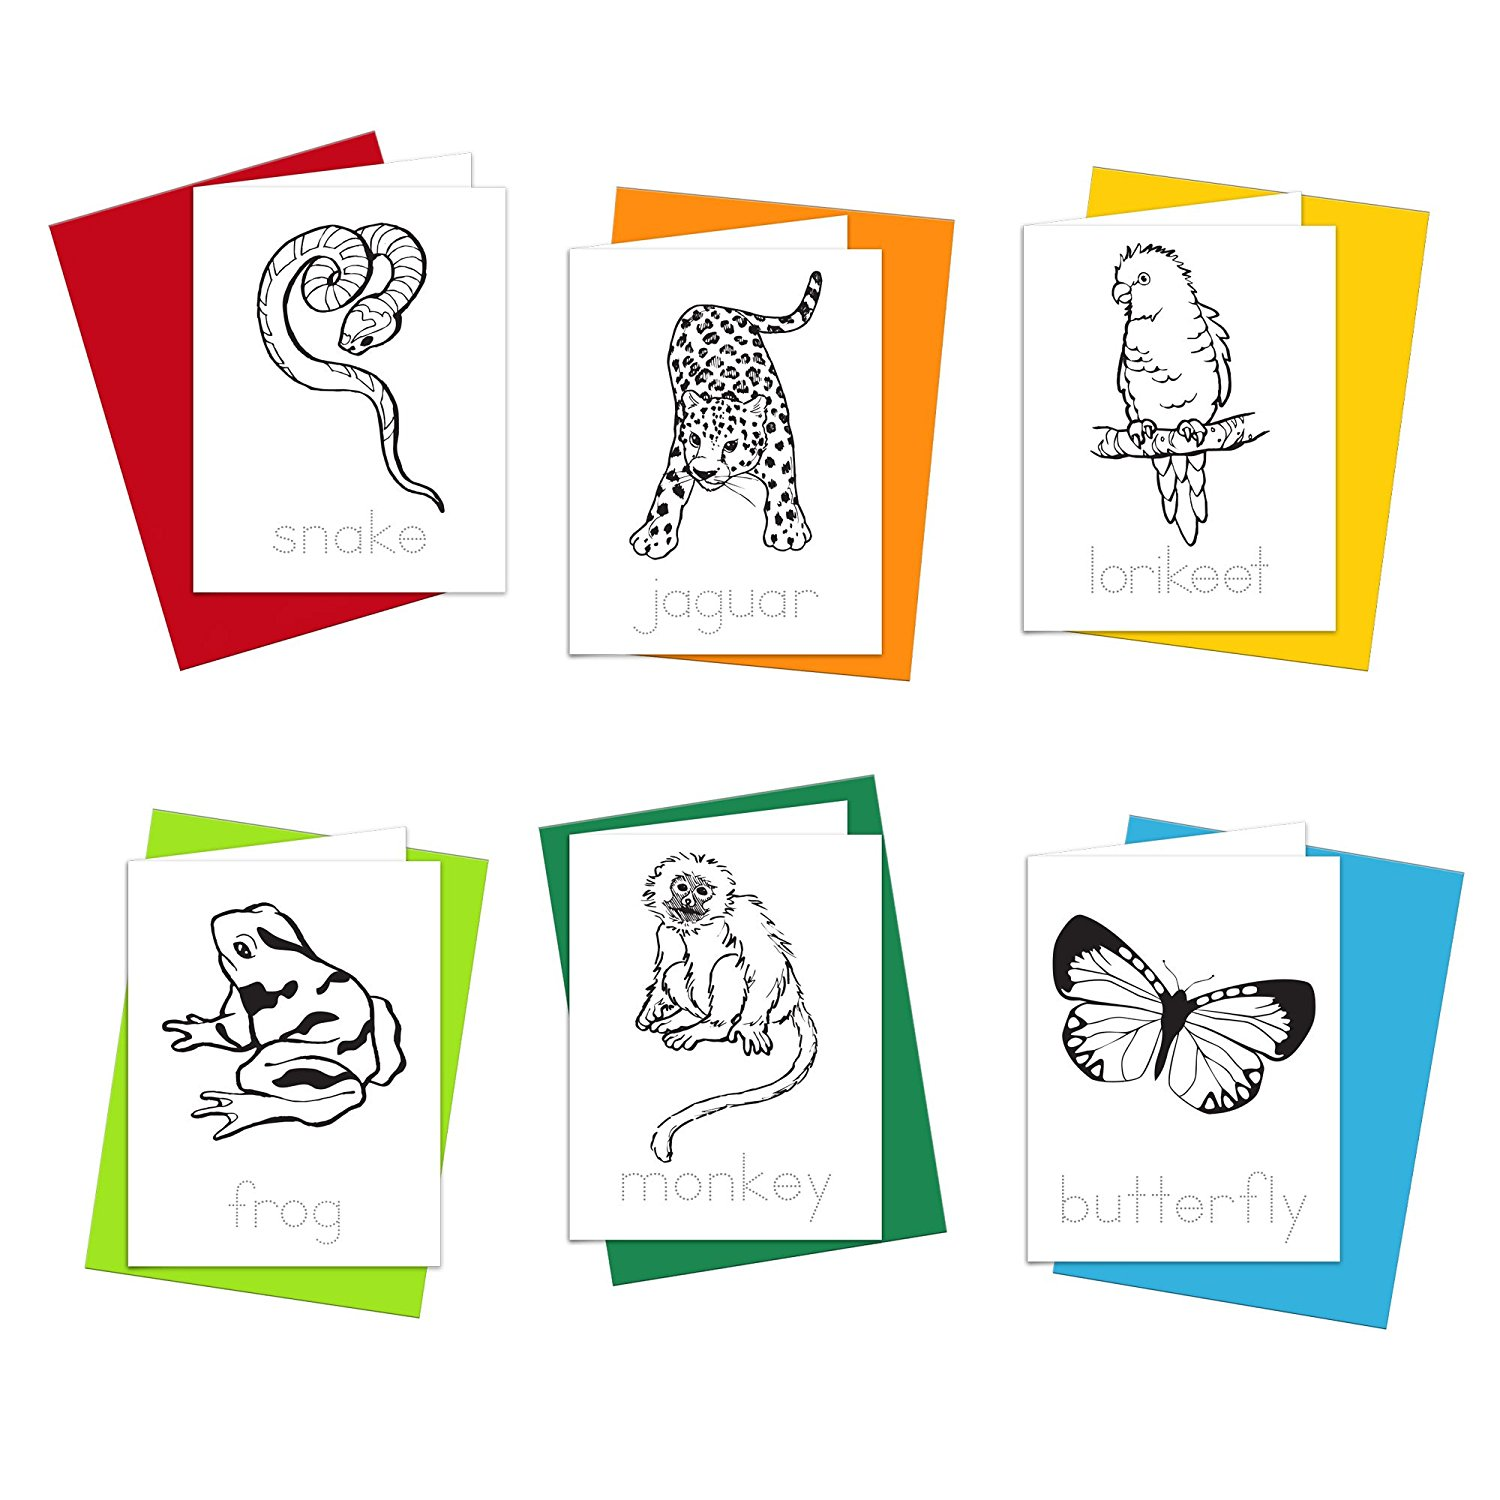 Note Cards - Rainforest Animals Greeting Cards for Kids to Color, Trace Letters and Practice Writing - Eco-friendly Stationery for Children - 100% Recycled Note Cards with Envelopes – Blank Inside